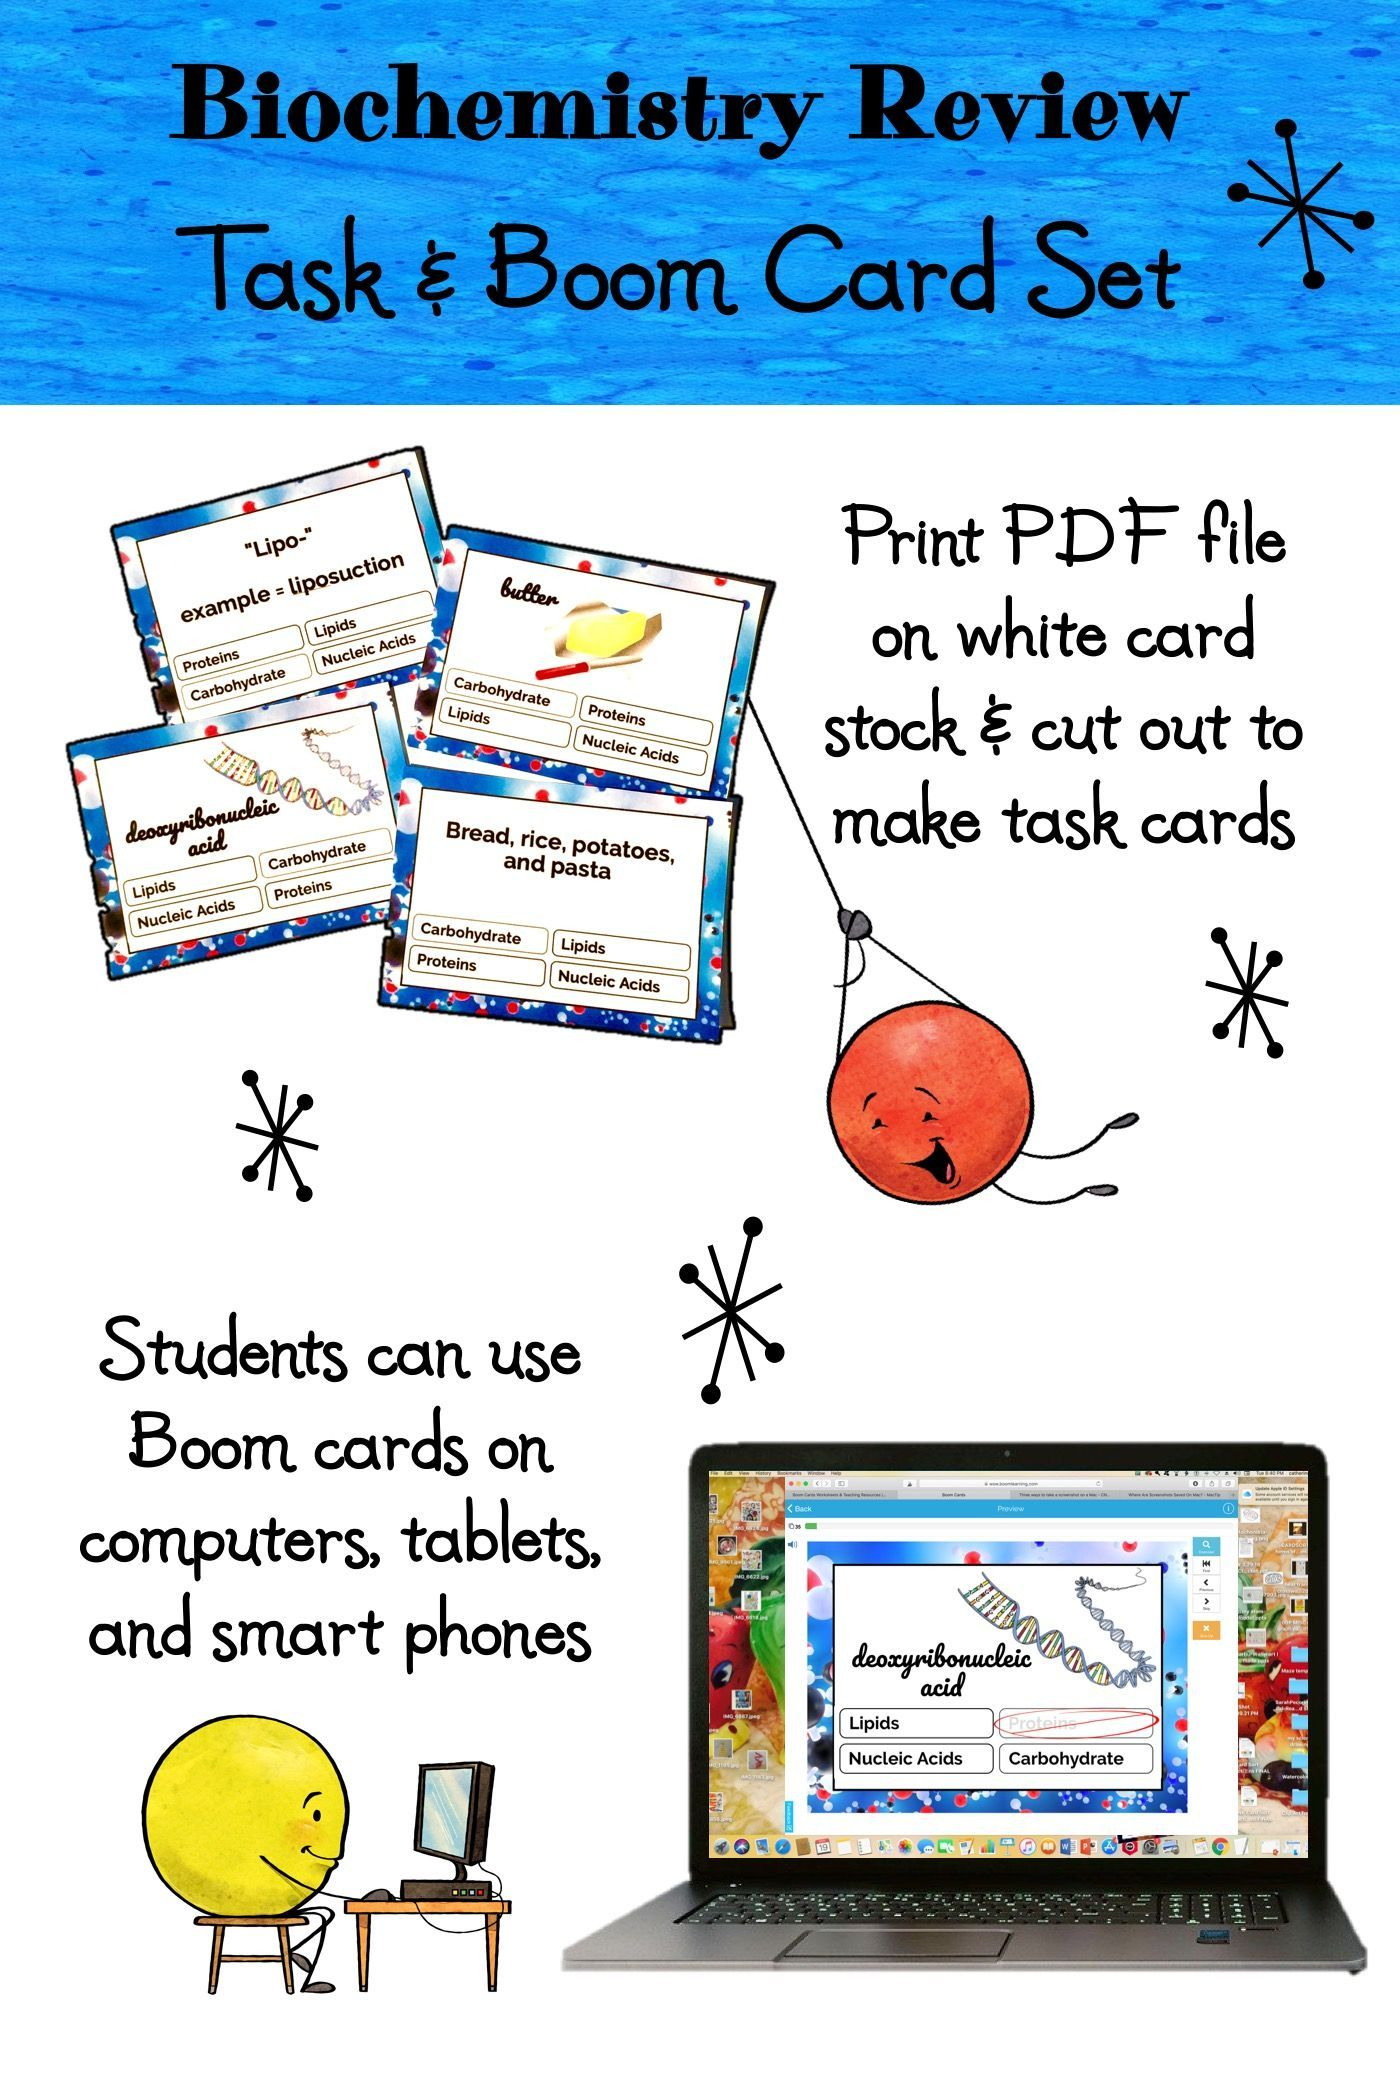 Biochemistry Review Task Cards With Digital Boom Cards